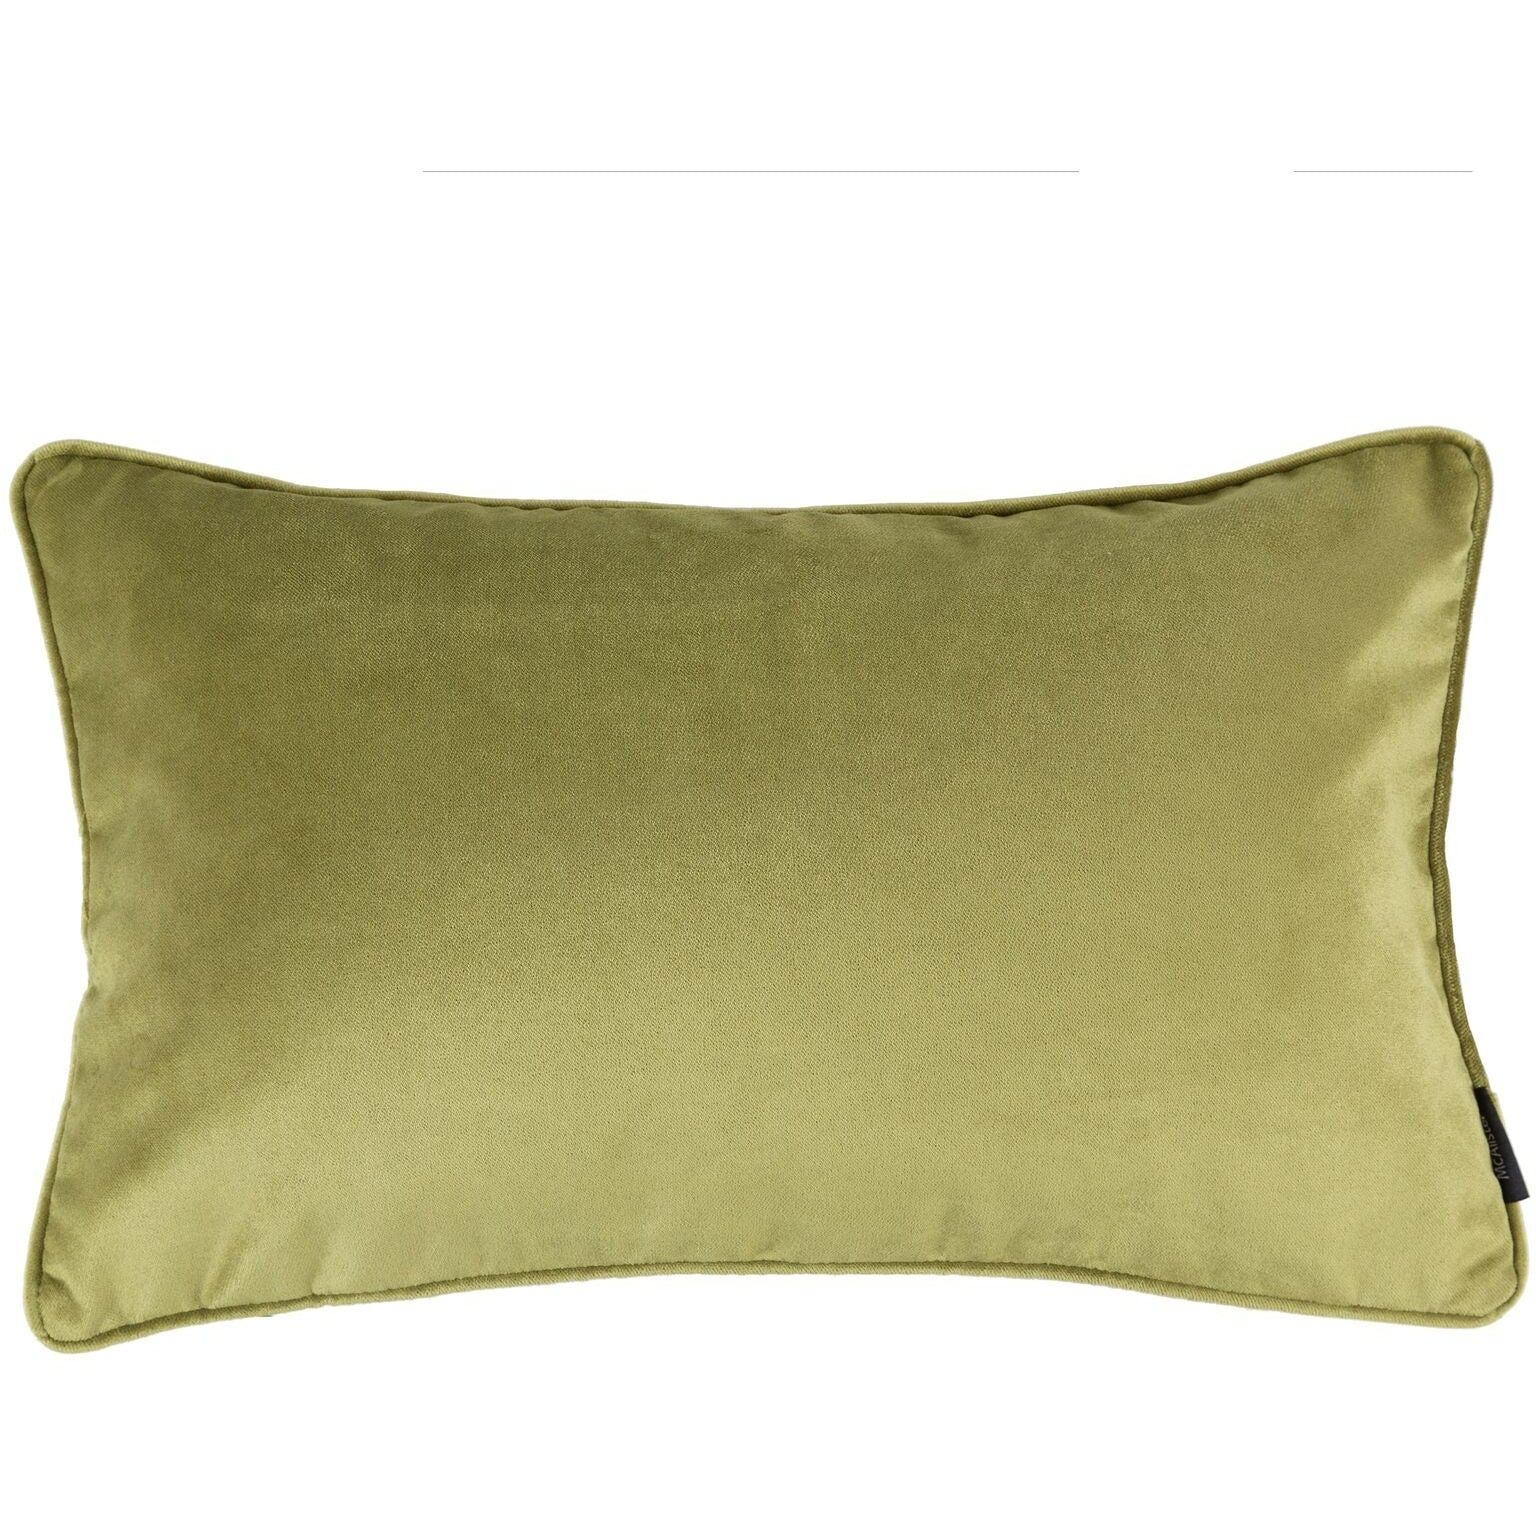 McAlister Textiles Matt Lime Green Velvet Pillow Pillow Cover Only 50cm x 30cm